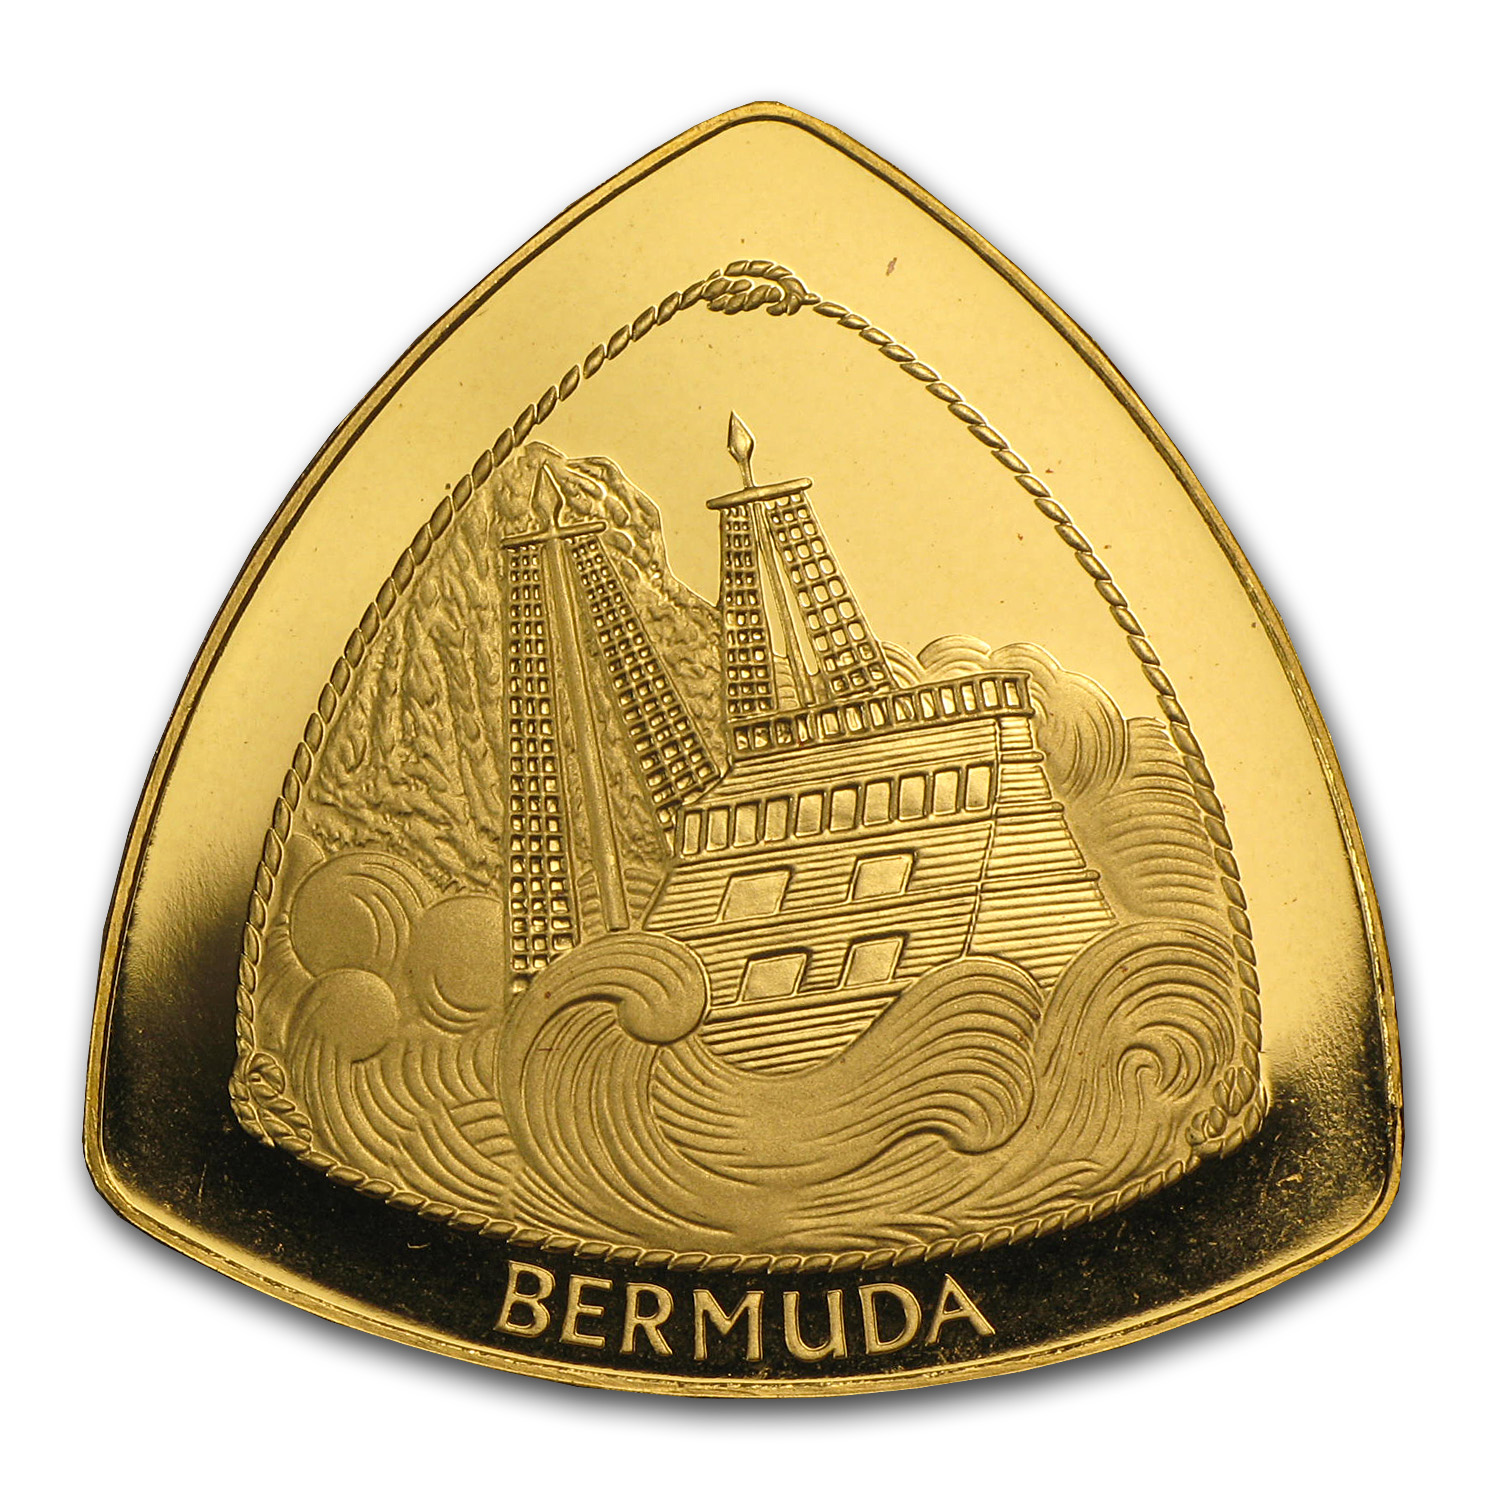 1997 Bermuda 1/2 oz Proof Gold $30 Triangle